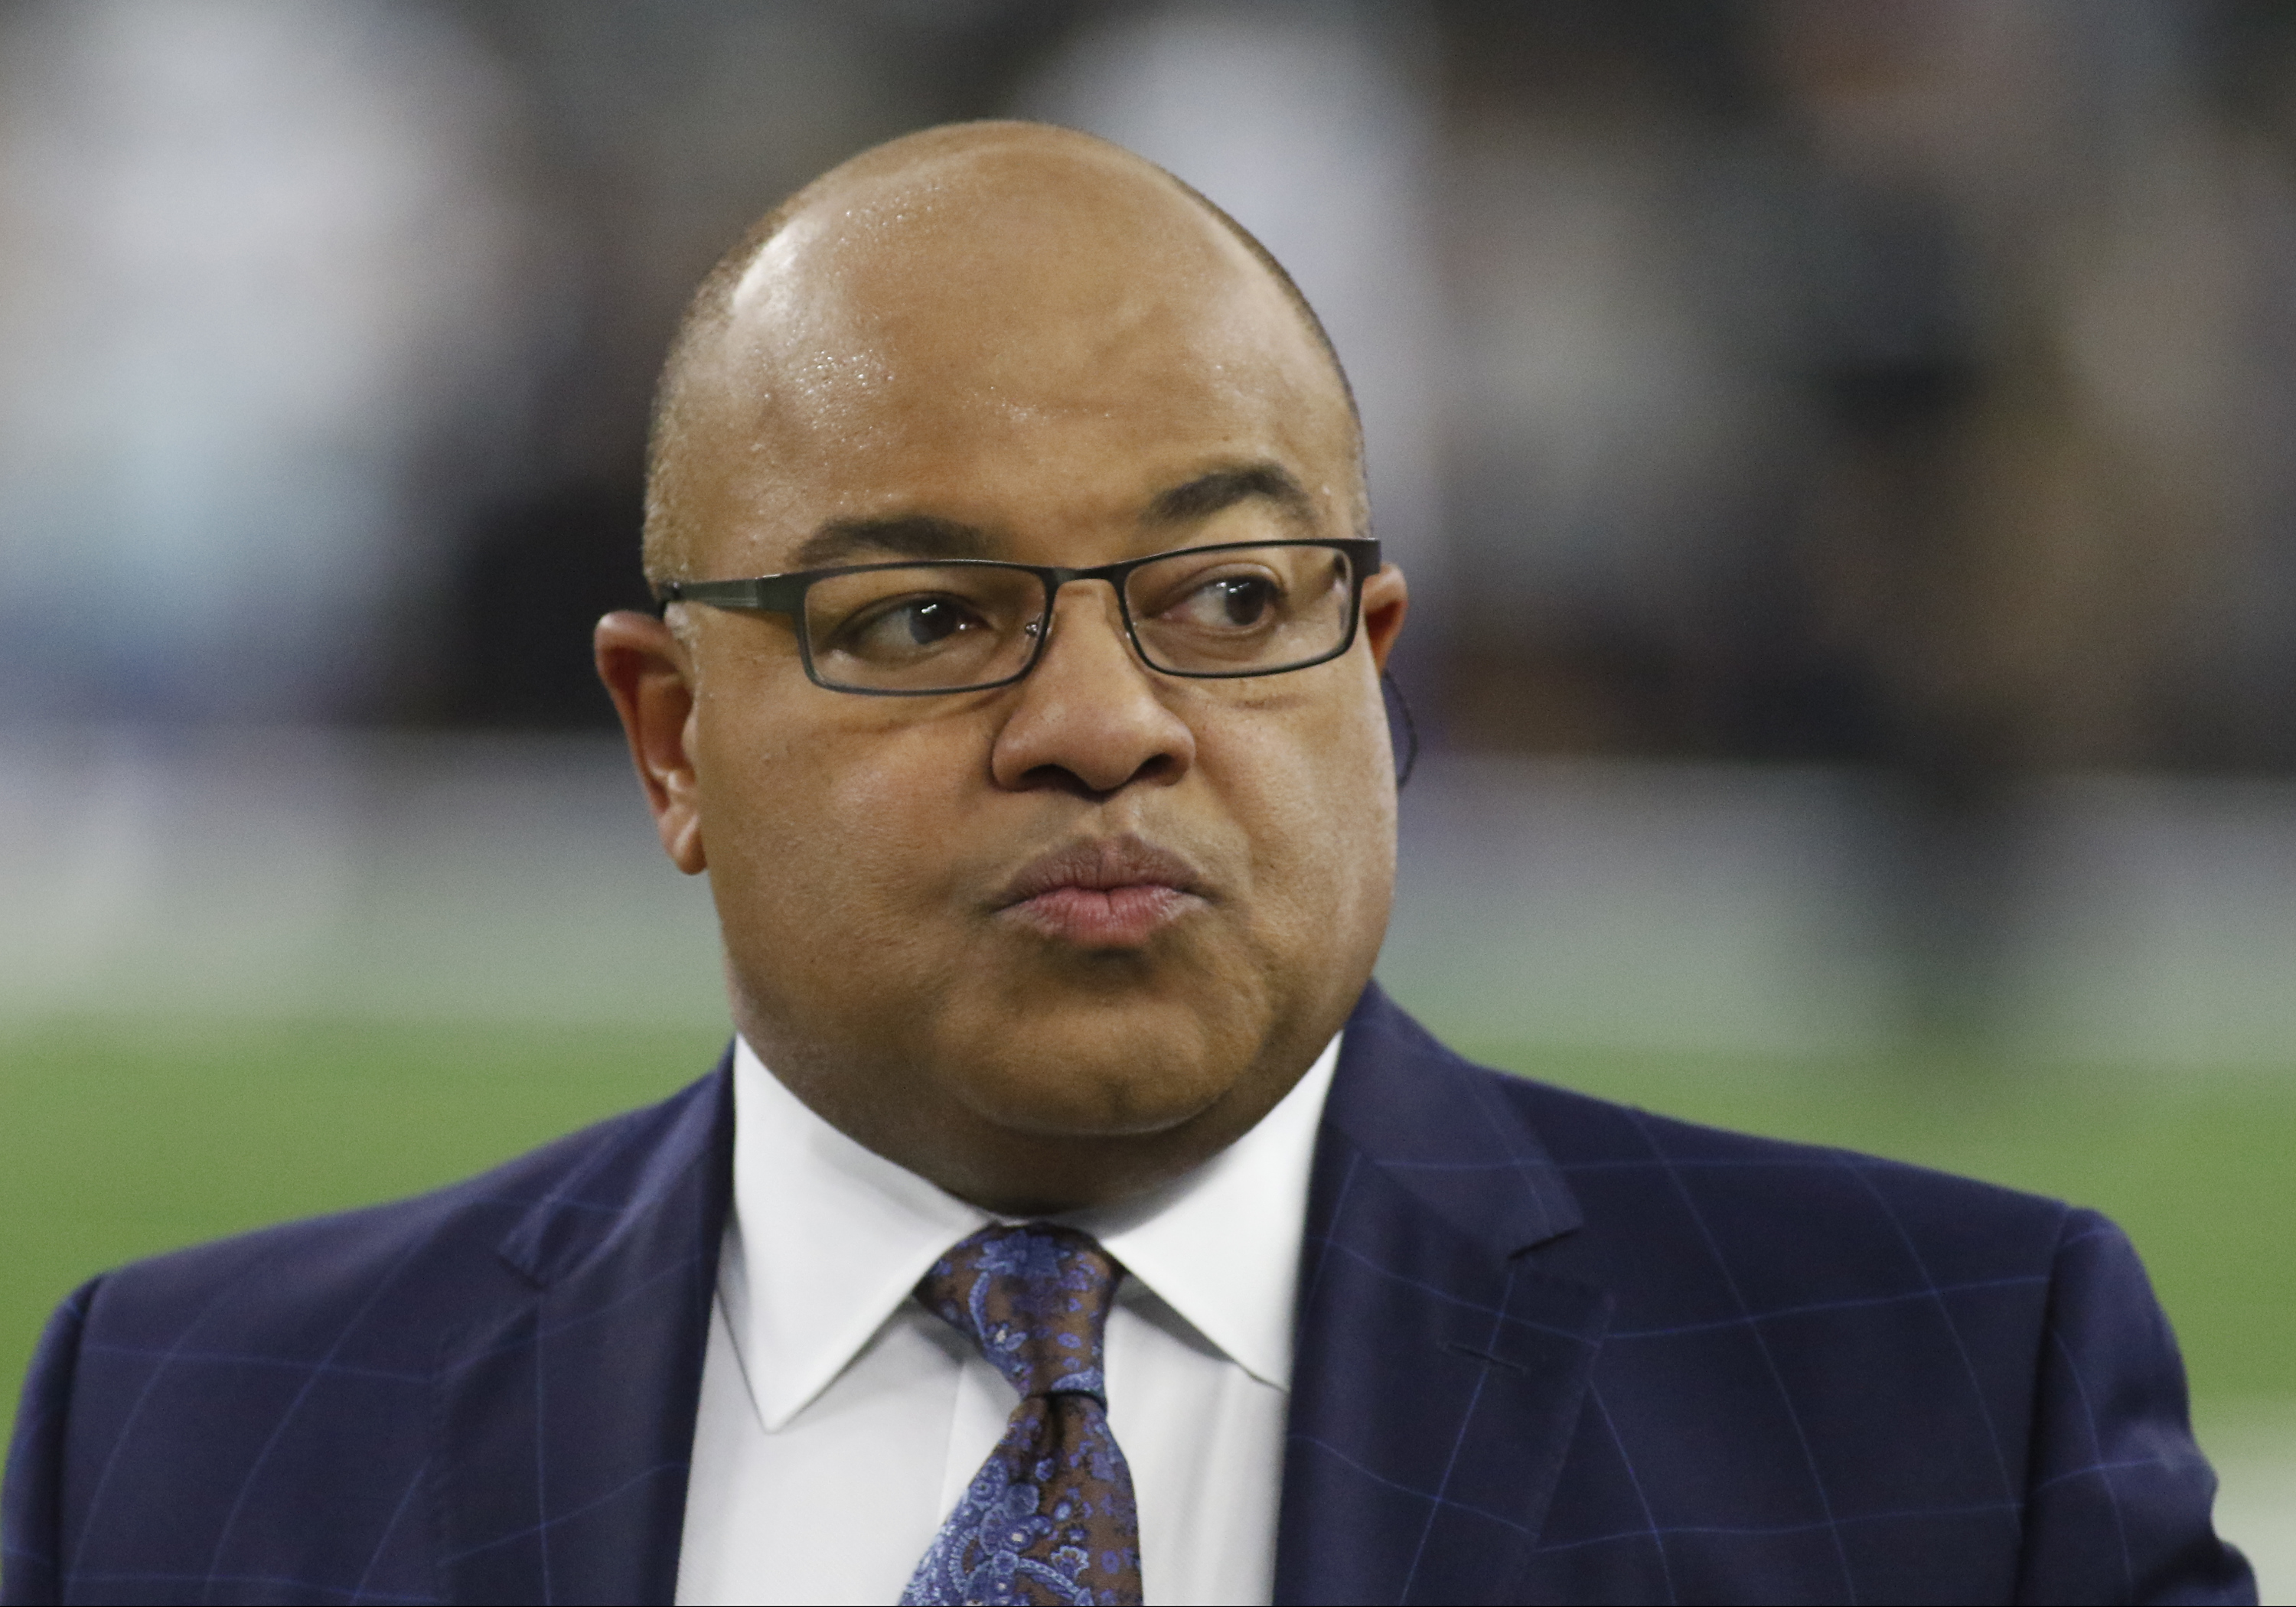 Veteran announcer Mike Tirico is calling 'Sunday Night Football' again in Week 14. Why is Tirico in the booth instead of Al Michaels?